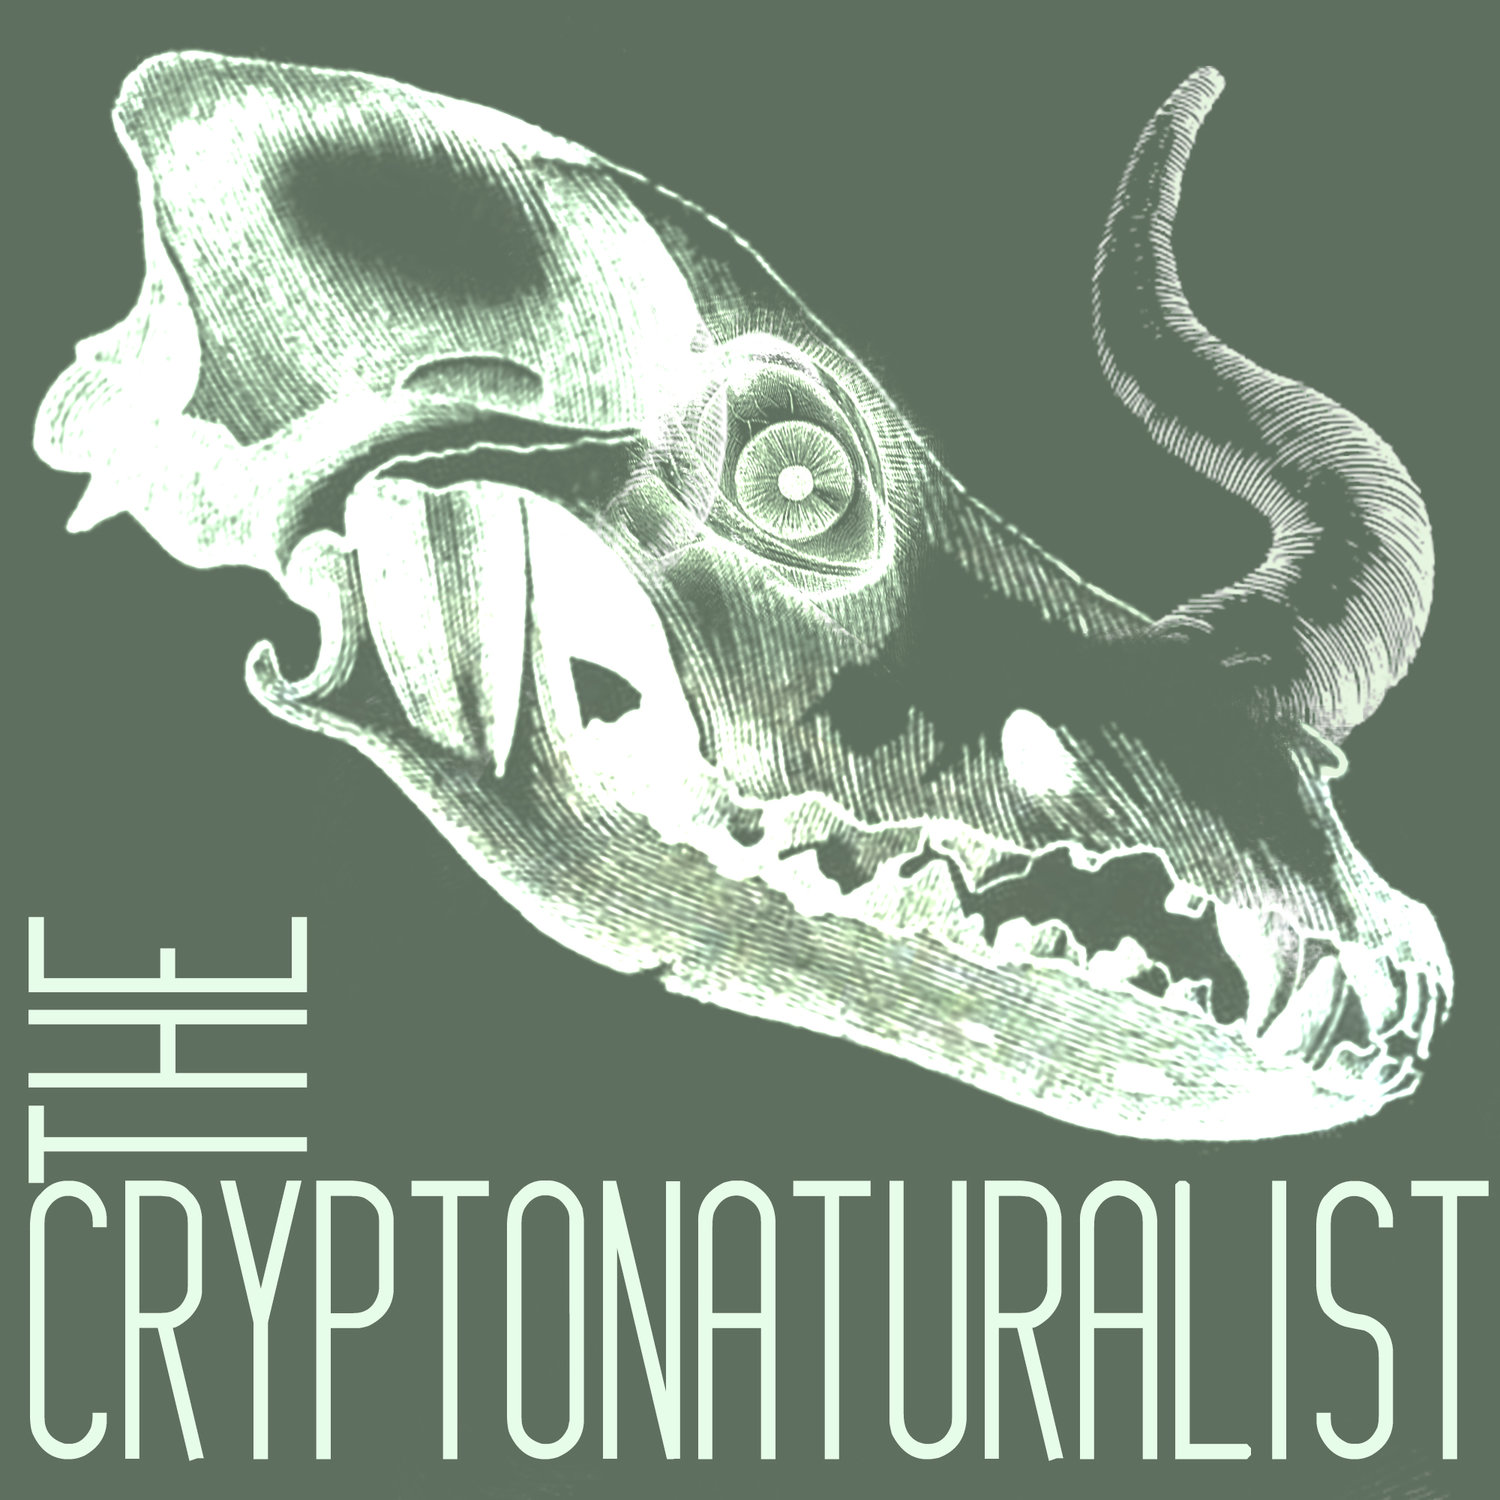 The Cryptonaturalist